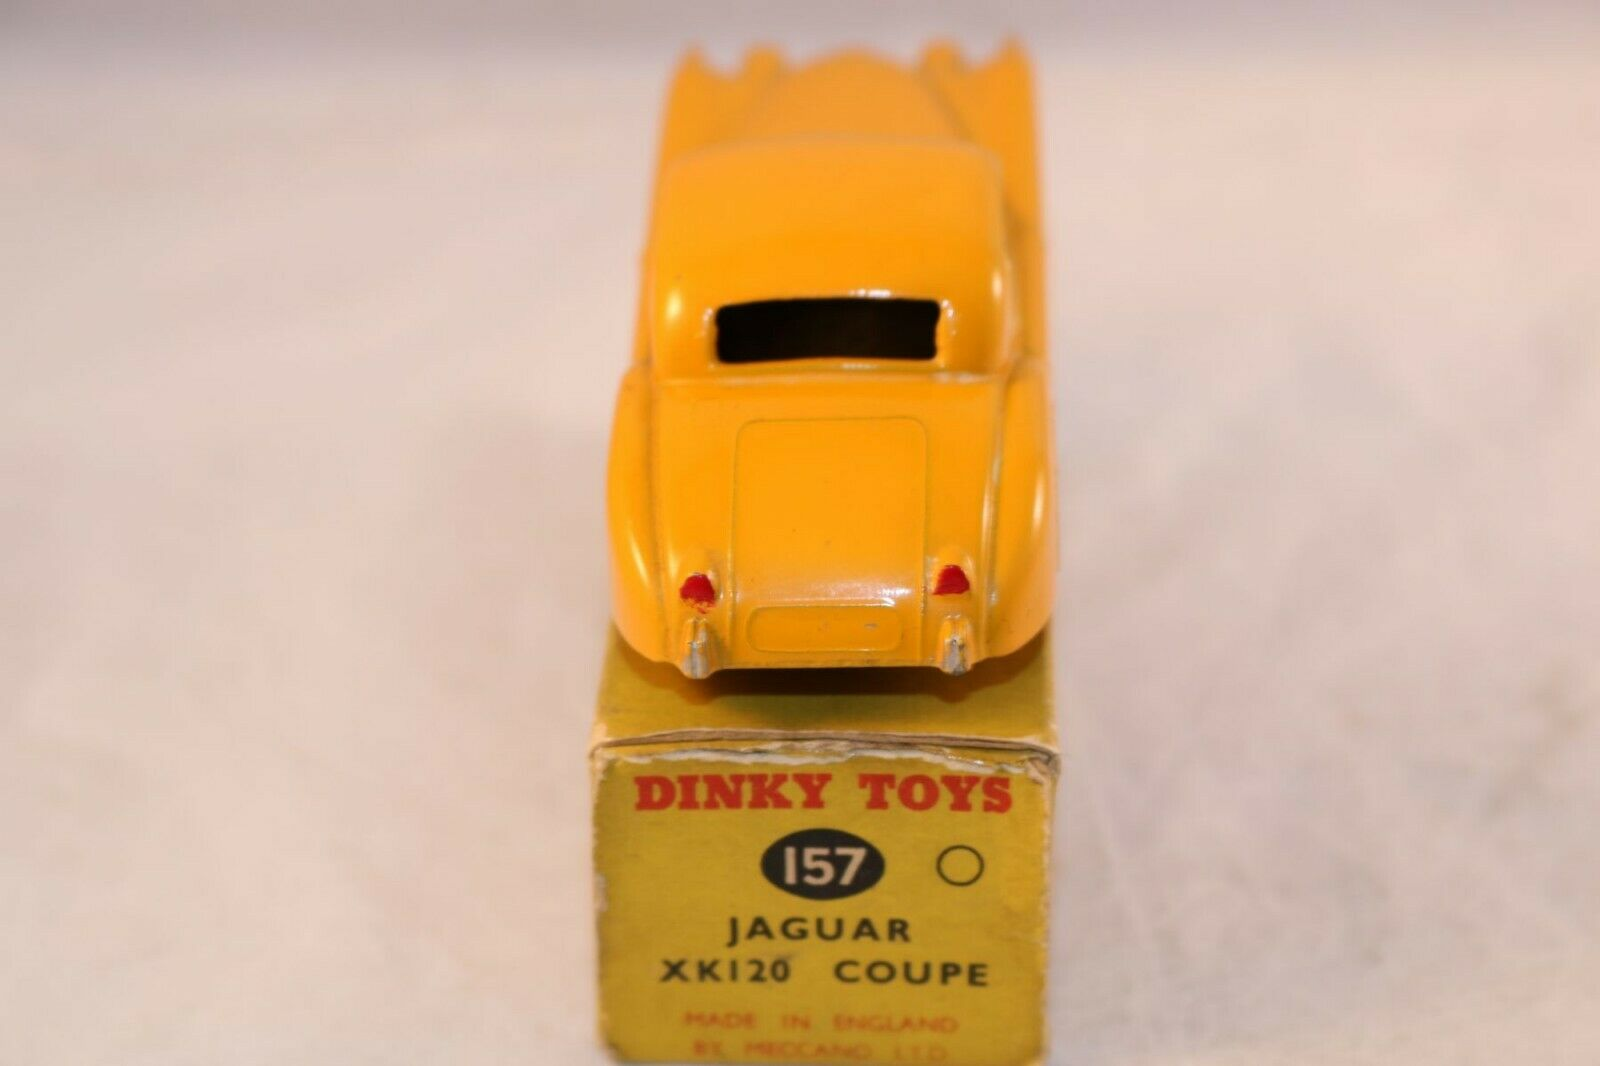 Dinky Toys 157 Jaguar XK120 Coupe yellow yellow yellow very near mint in box all original e4a1d7